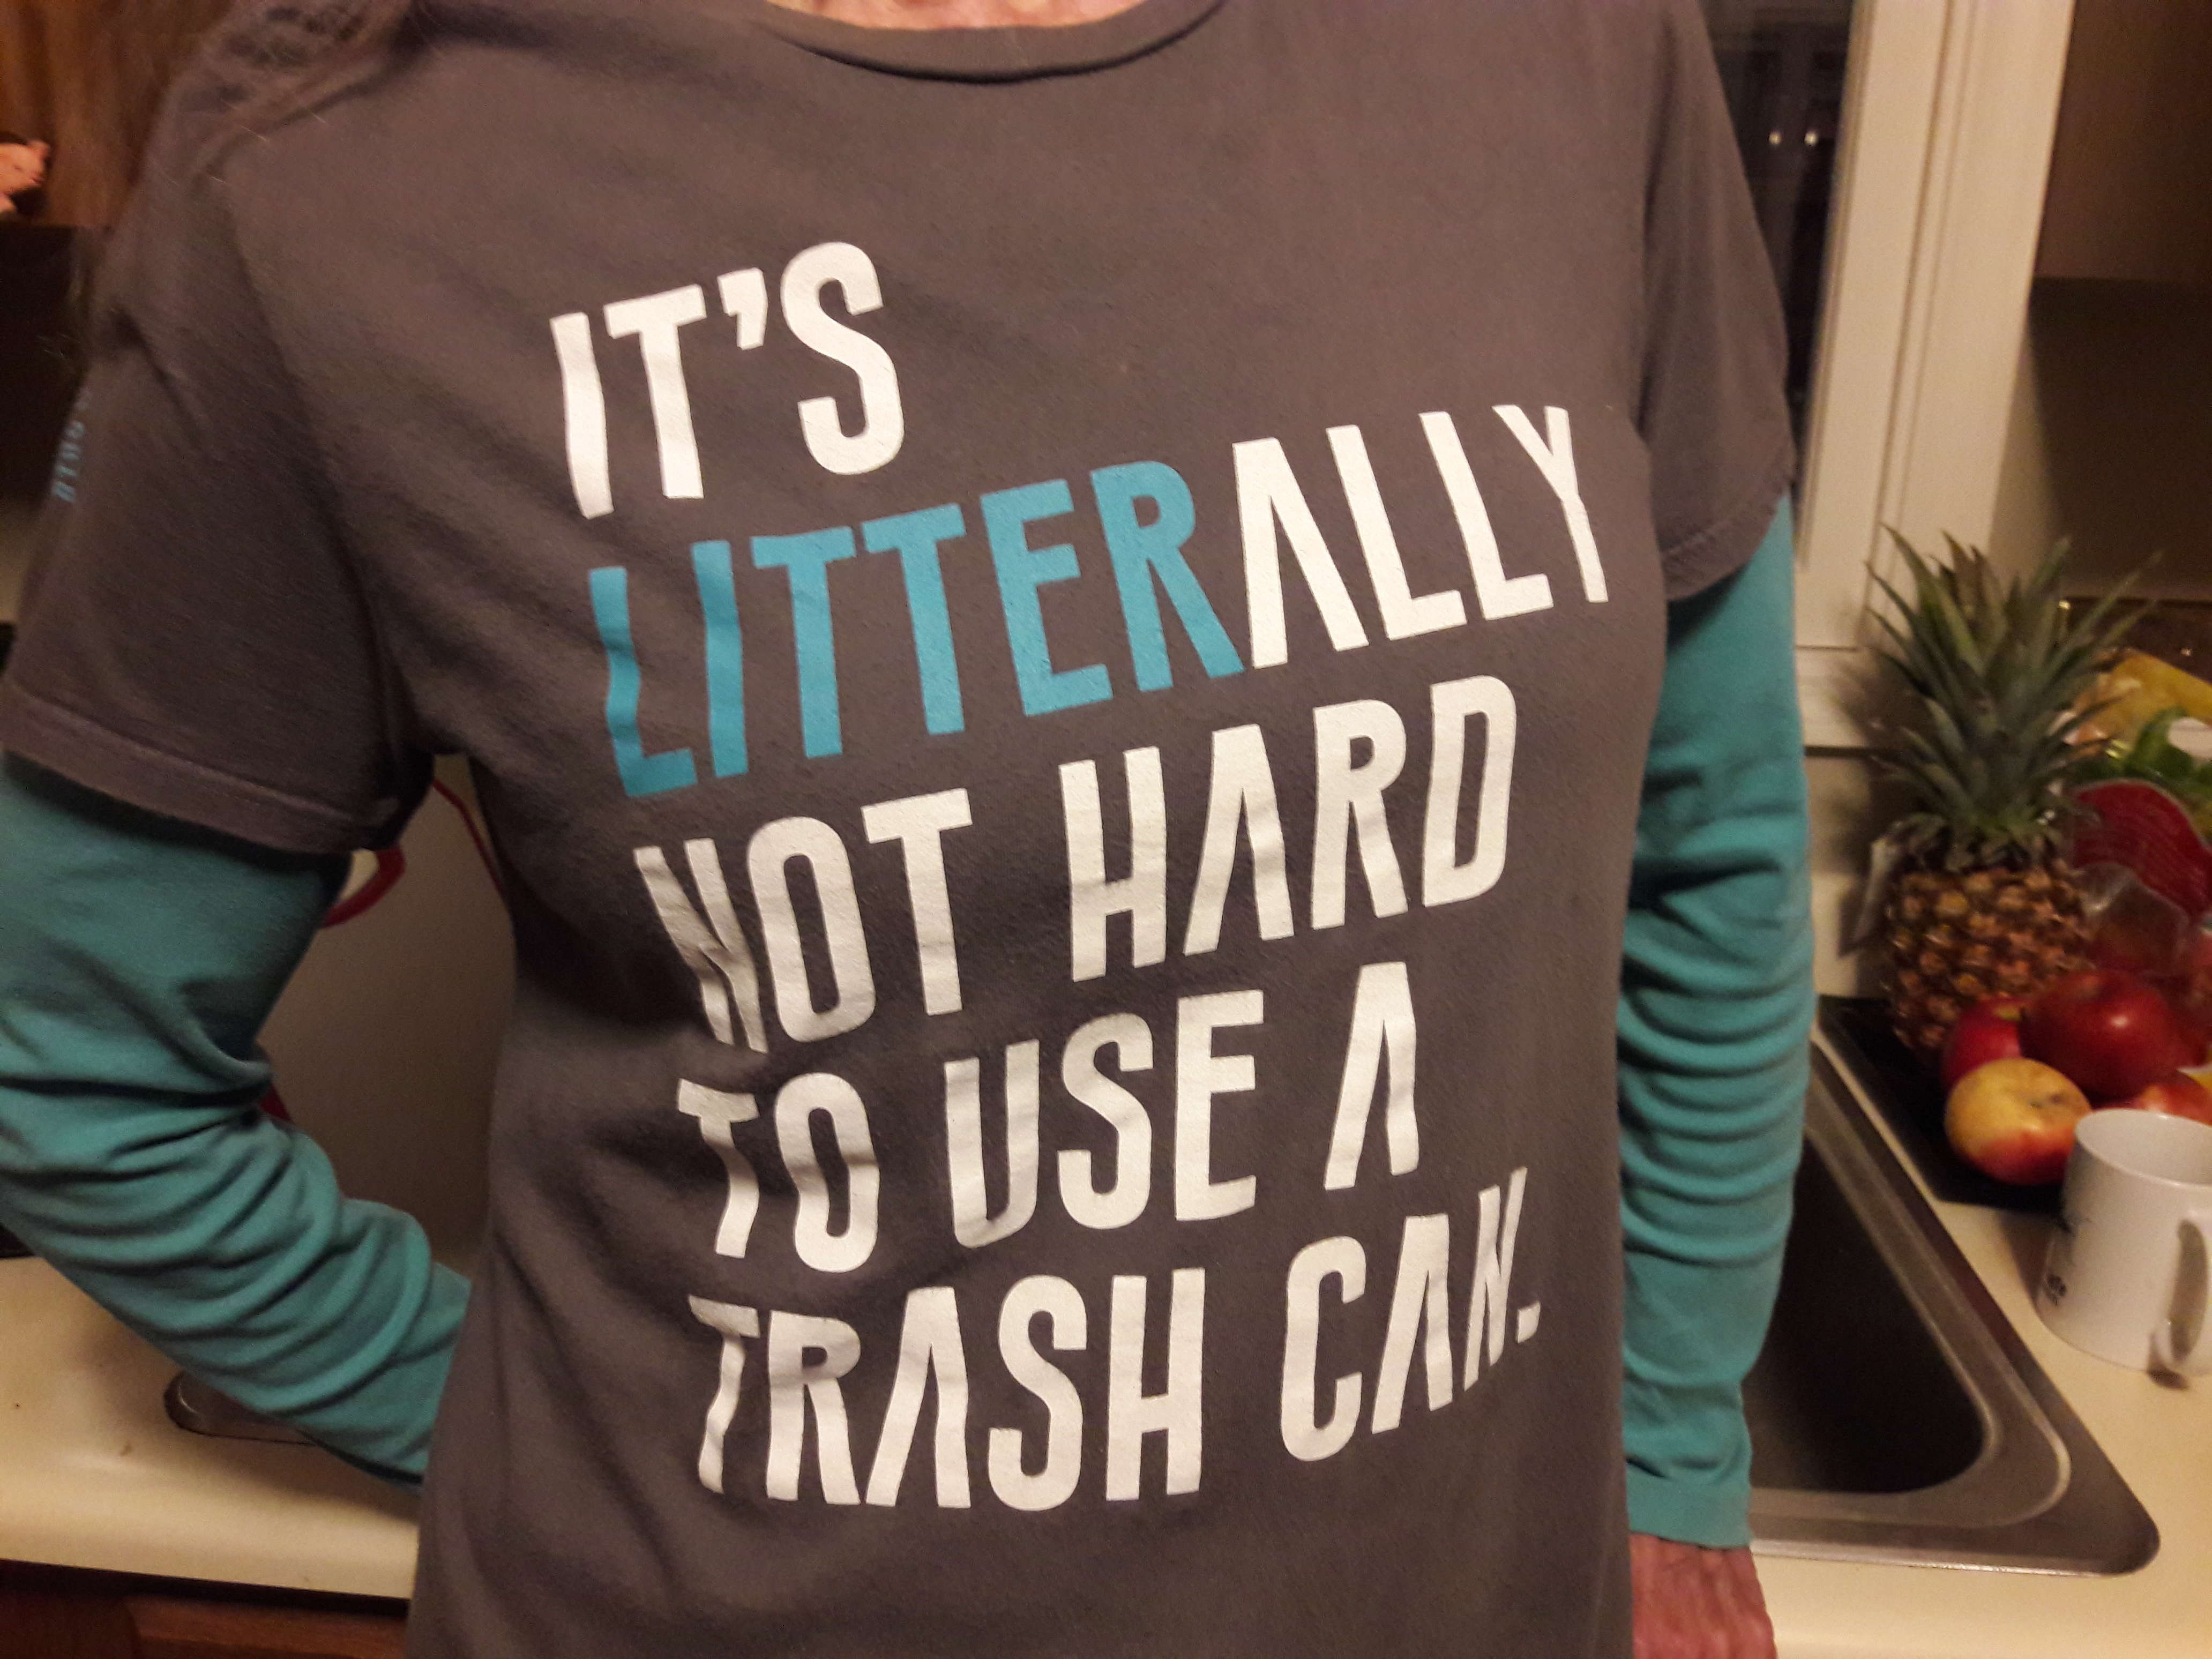 use a trash can T-shirt